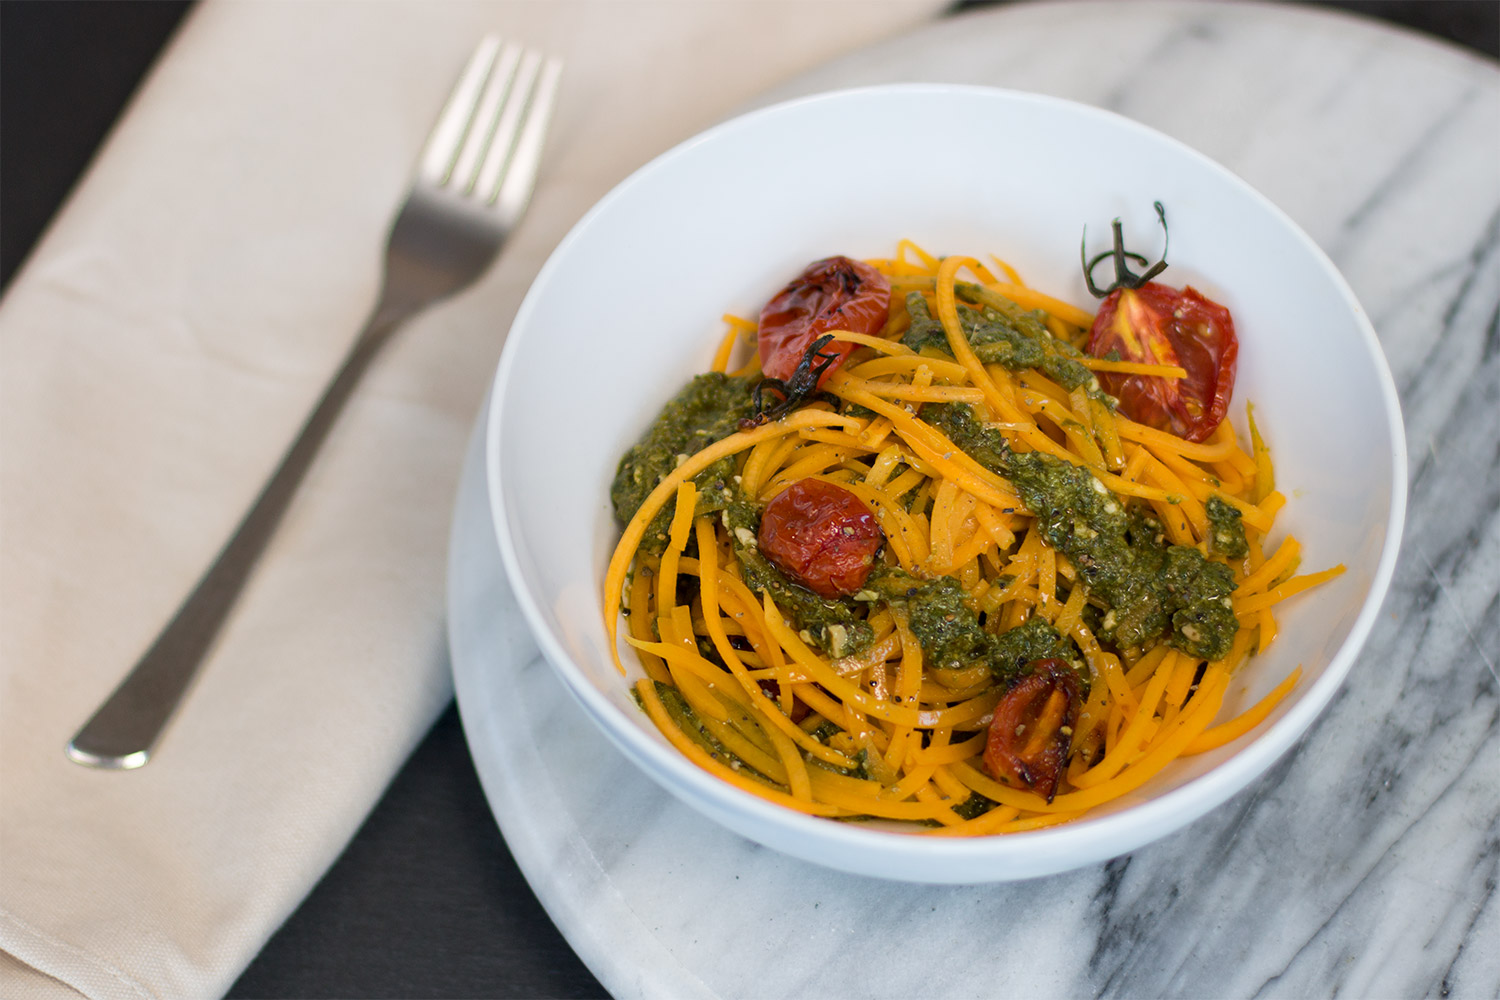 Vegan green basil pesto with roast tomatoes and butternut squash 'spaghetti'